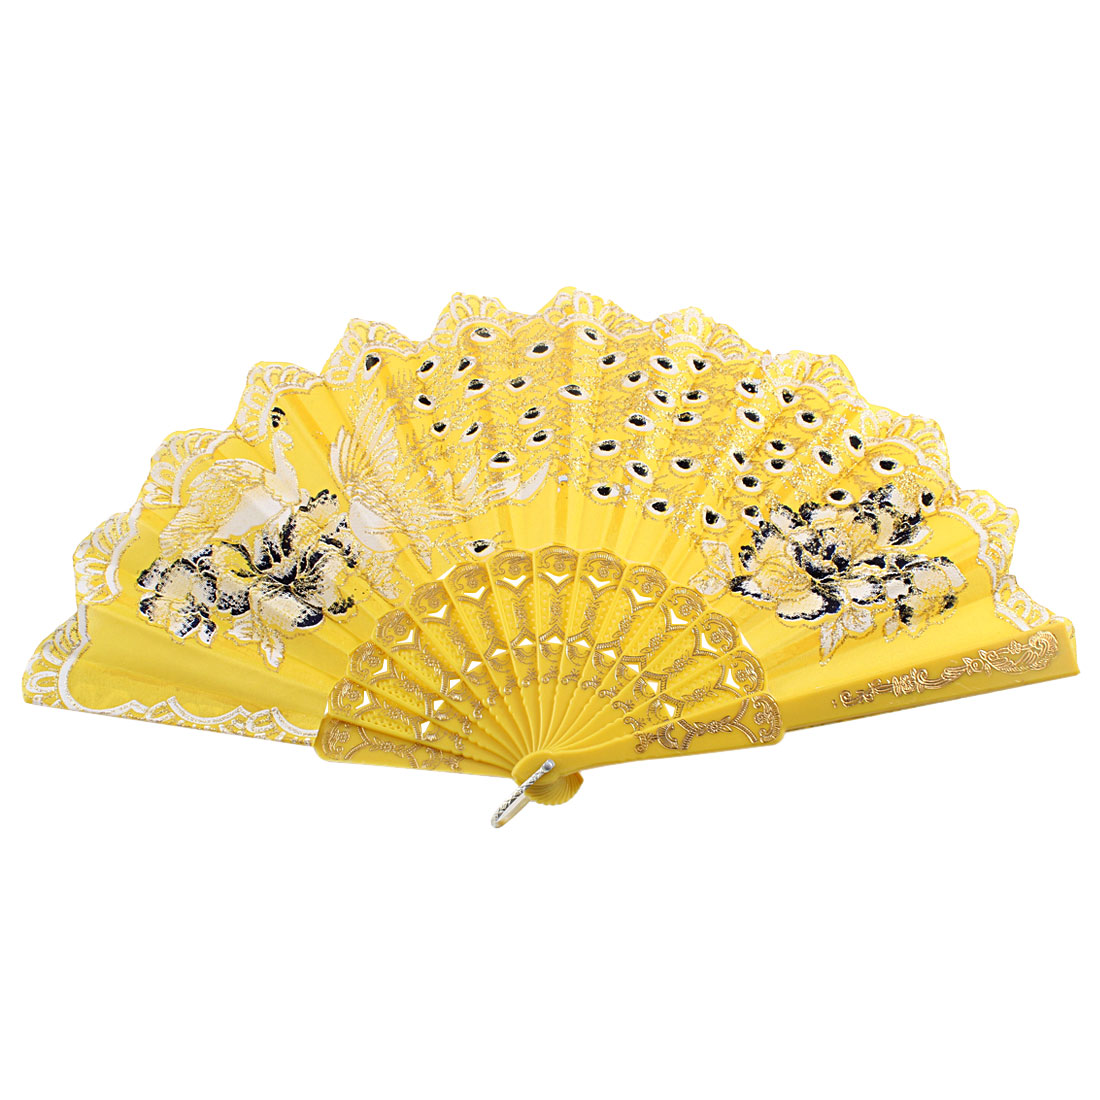 Glittery Powder Decor Peacock Pattern Floral Rim Handheld Hand Fan Yellow